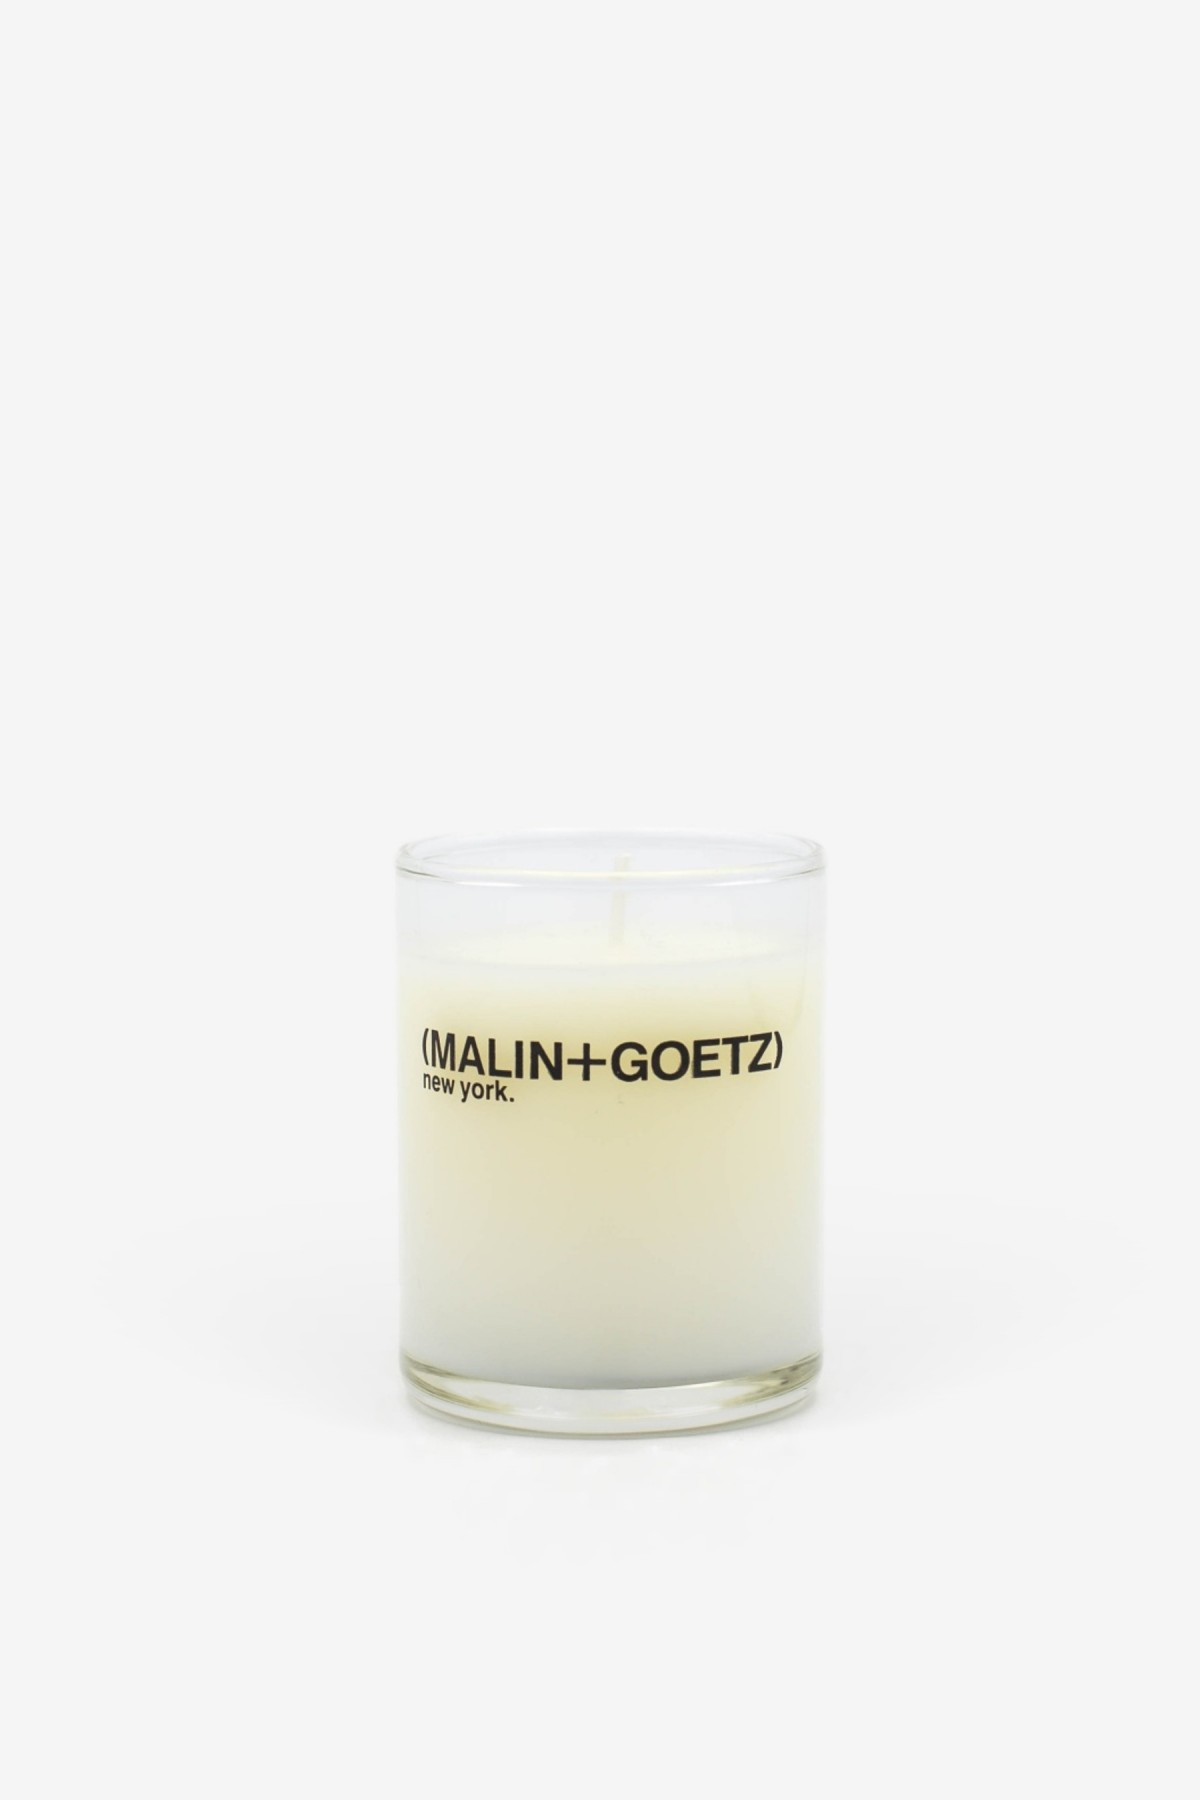 Malin+Goetz Neroli Votive 67g in